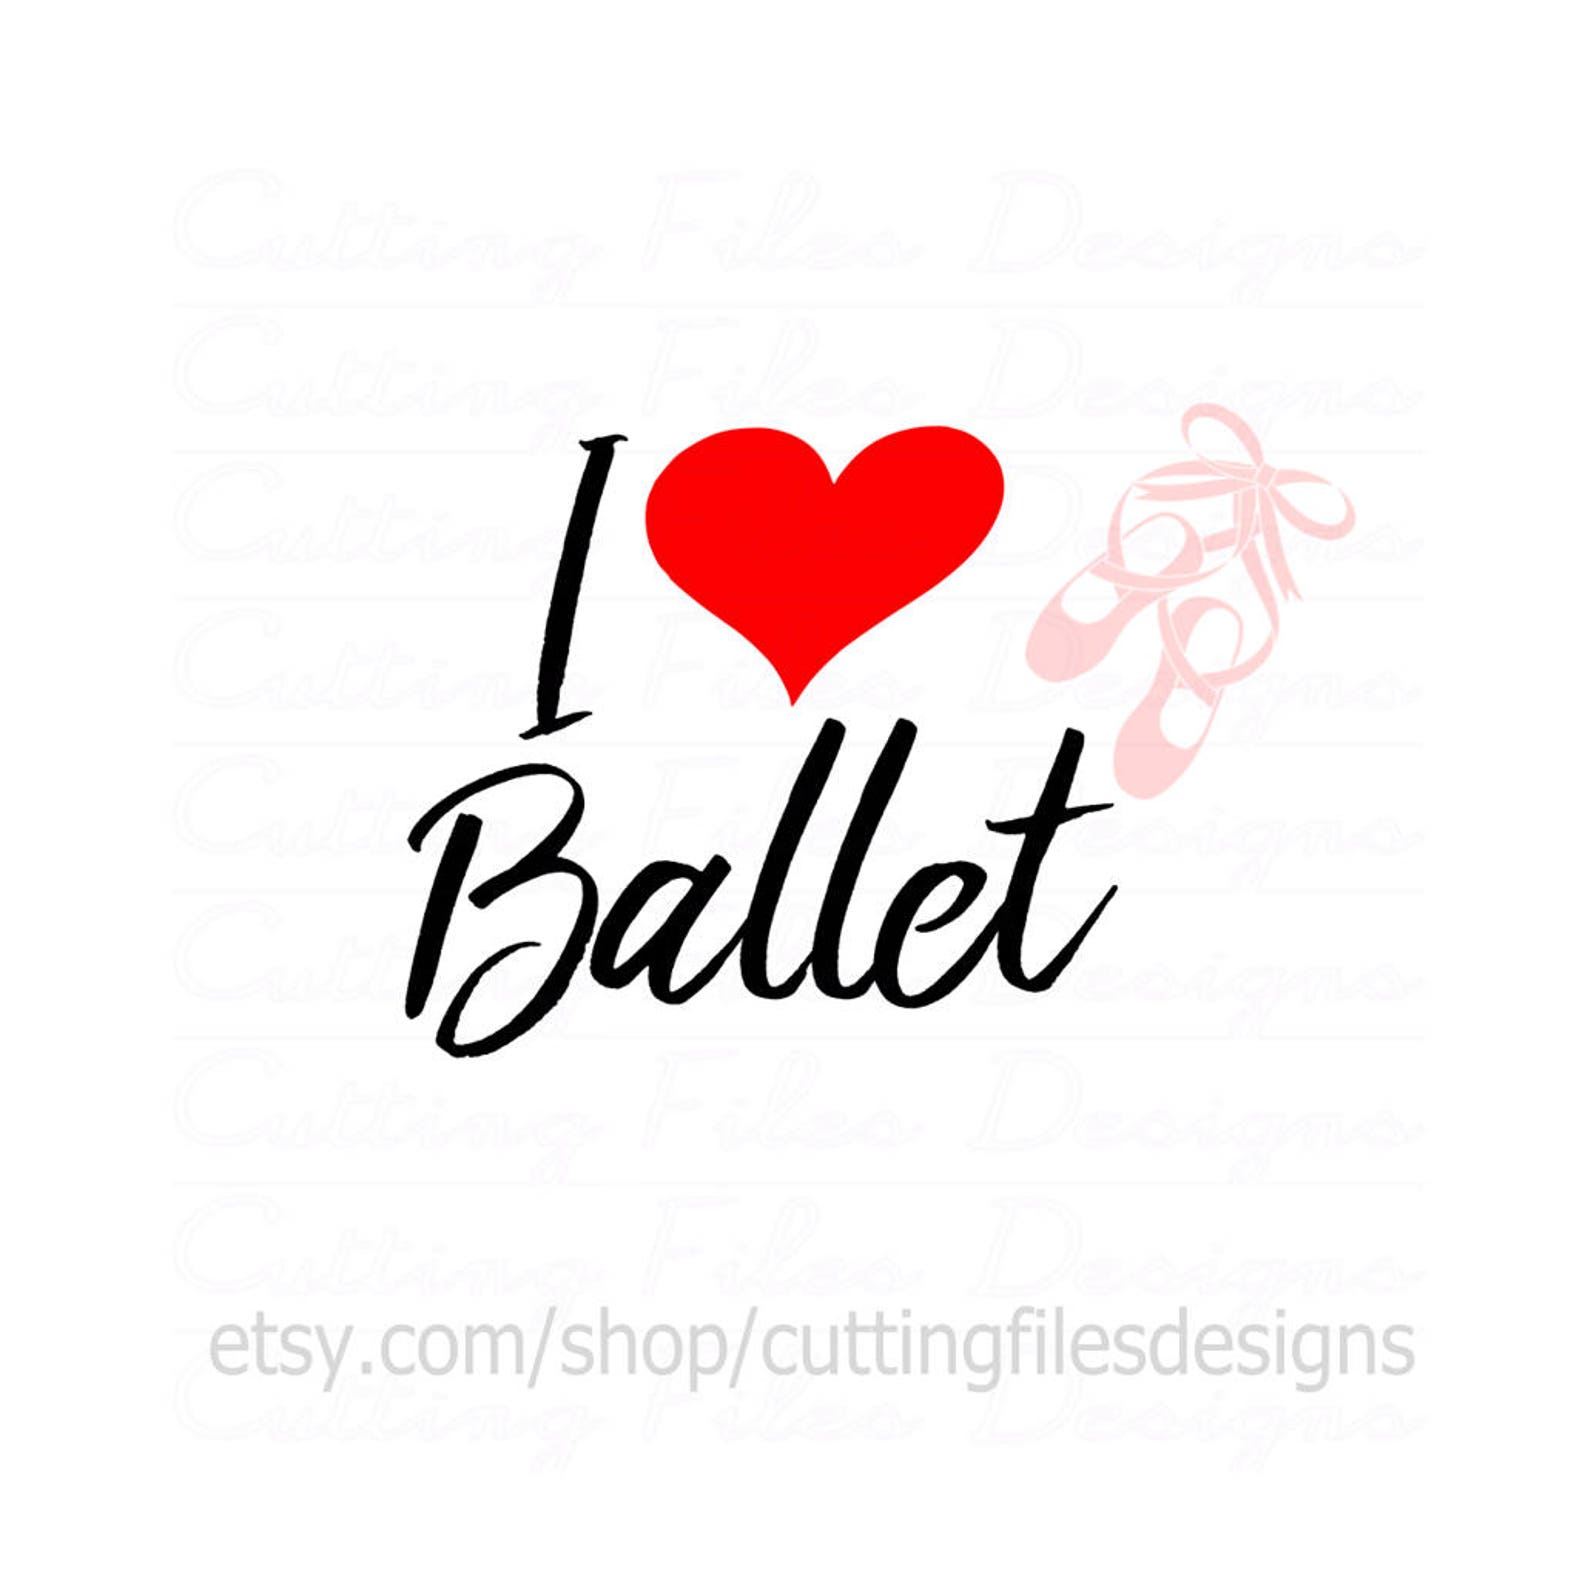 i heart love ballet svg cutting file w/png - for cricut design space and silhouette studio - commercial use